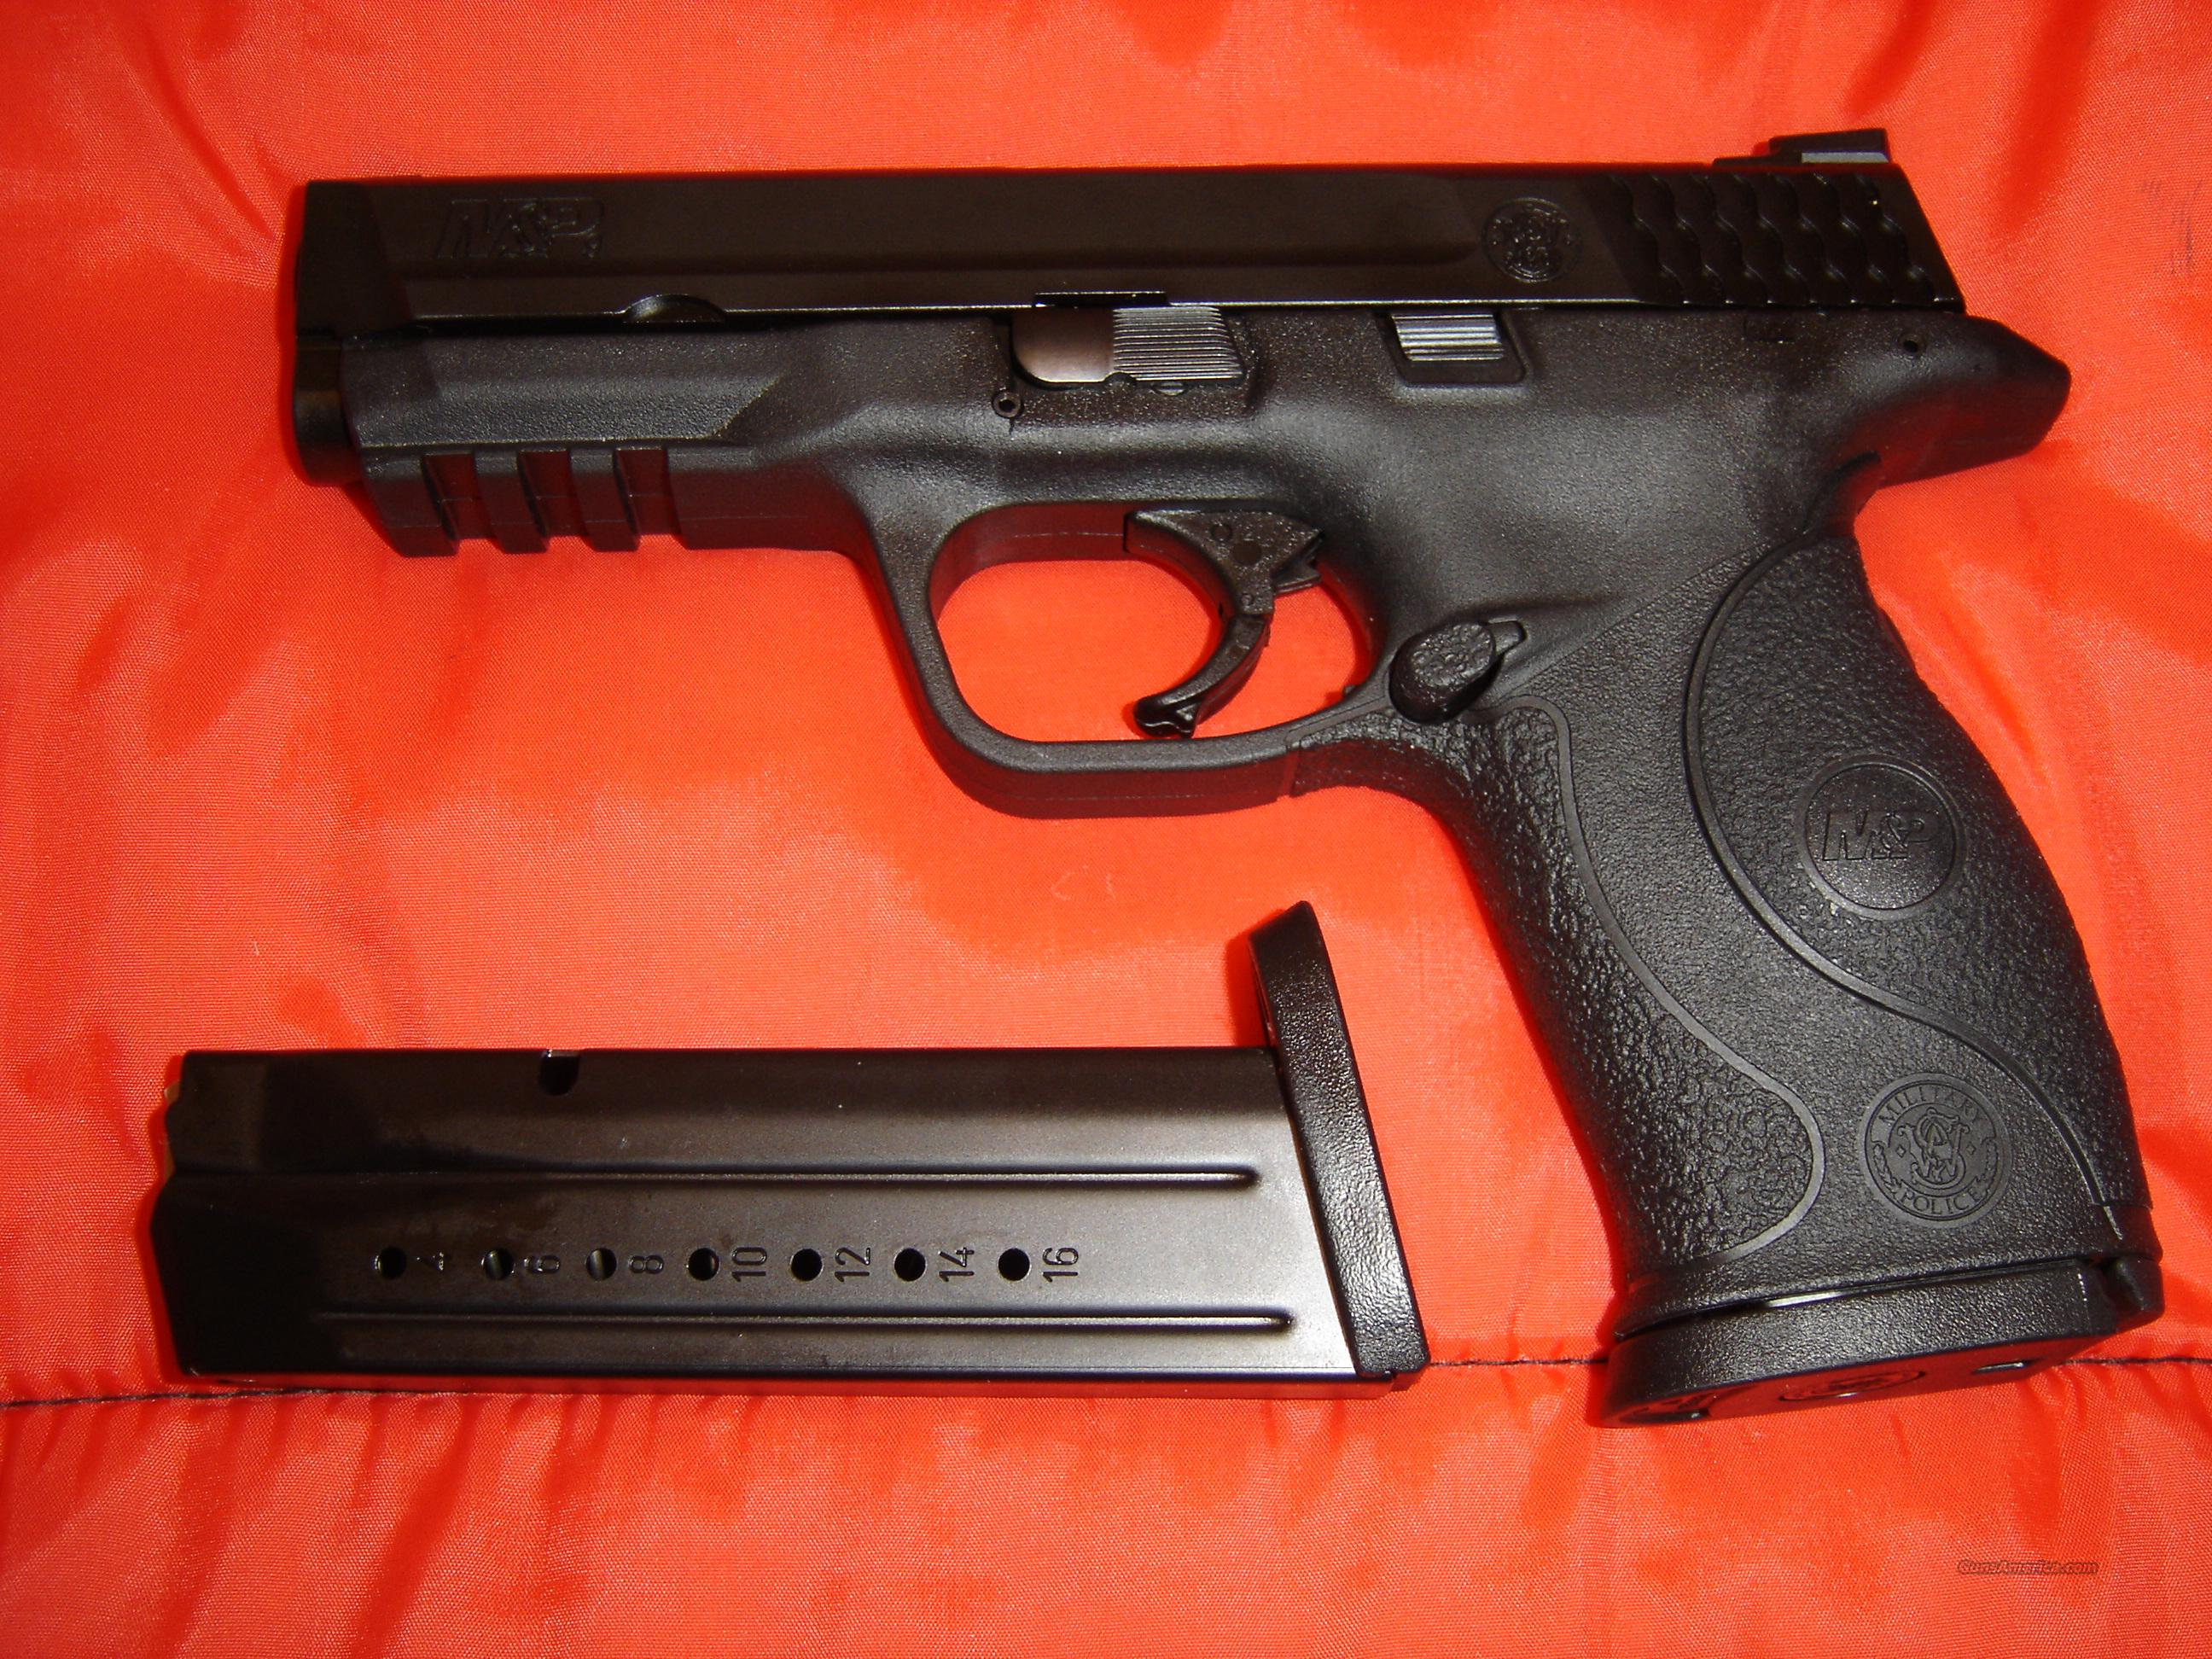 Smith and Wesson M&P 9mm with Crimson Trace Laser  Guns > Pistols > Smith & Wesson Pistols - Autos > Polymer Frame